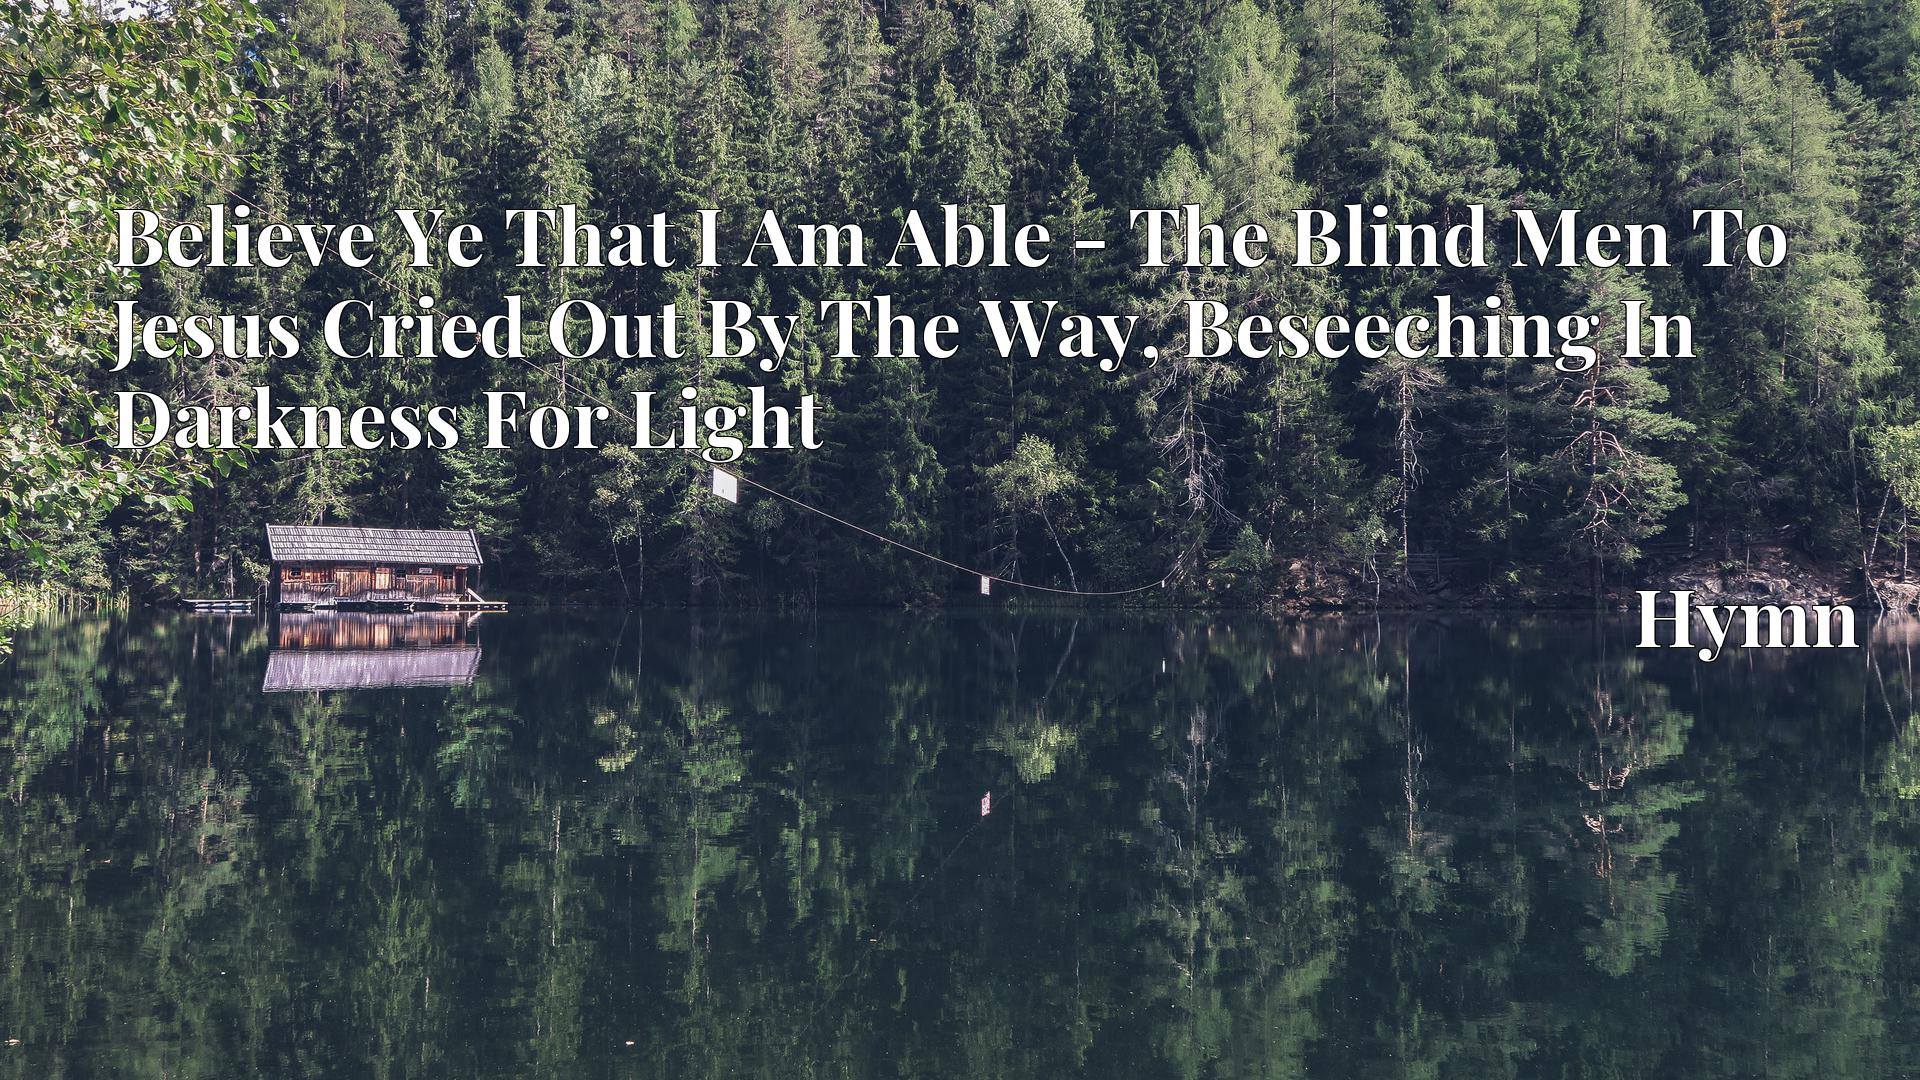 Believe Ye That I Am Able - The Blind Men To Jesus Cried Out By The Way, Beseeching In Darkness For Light Hymn